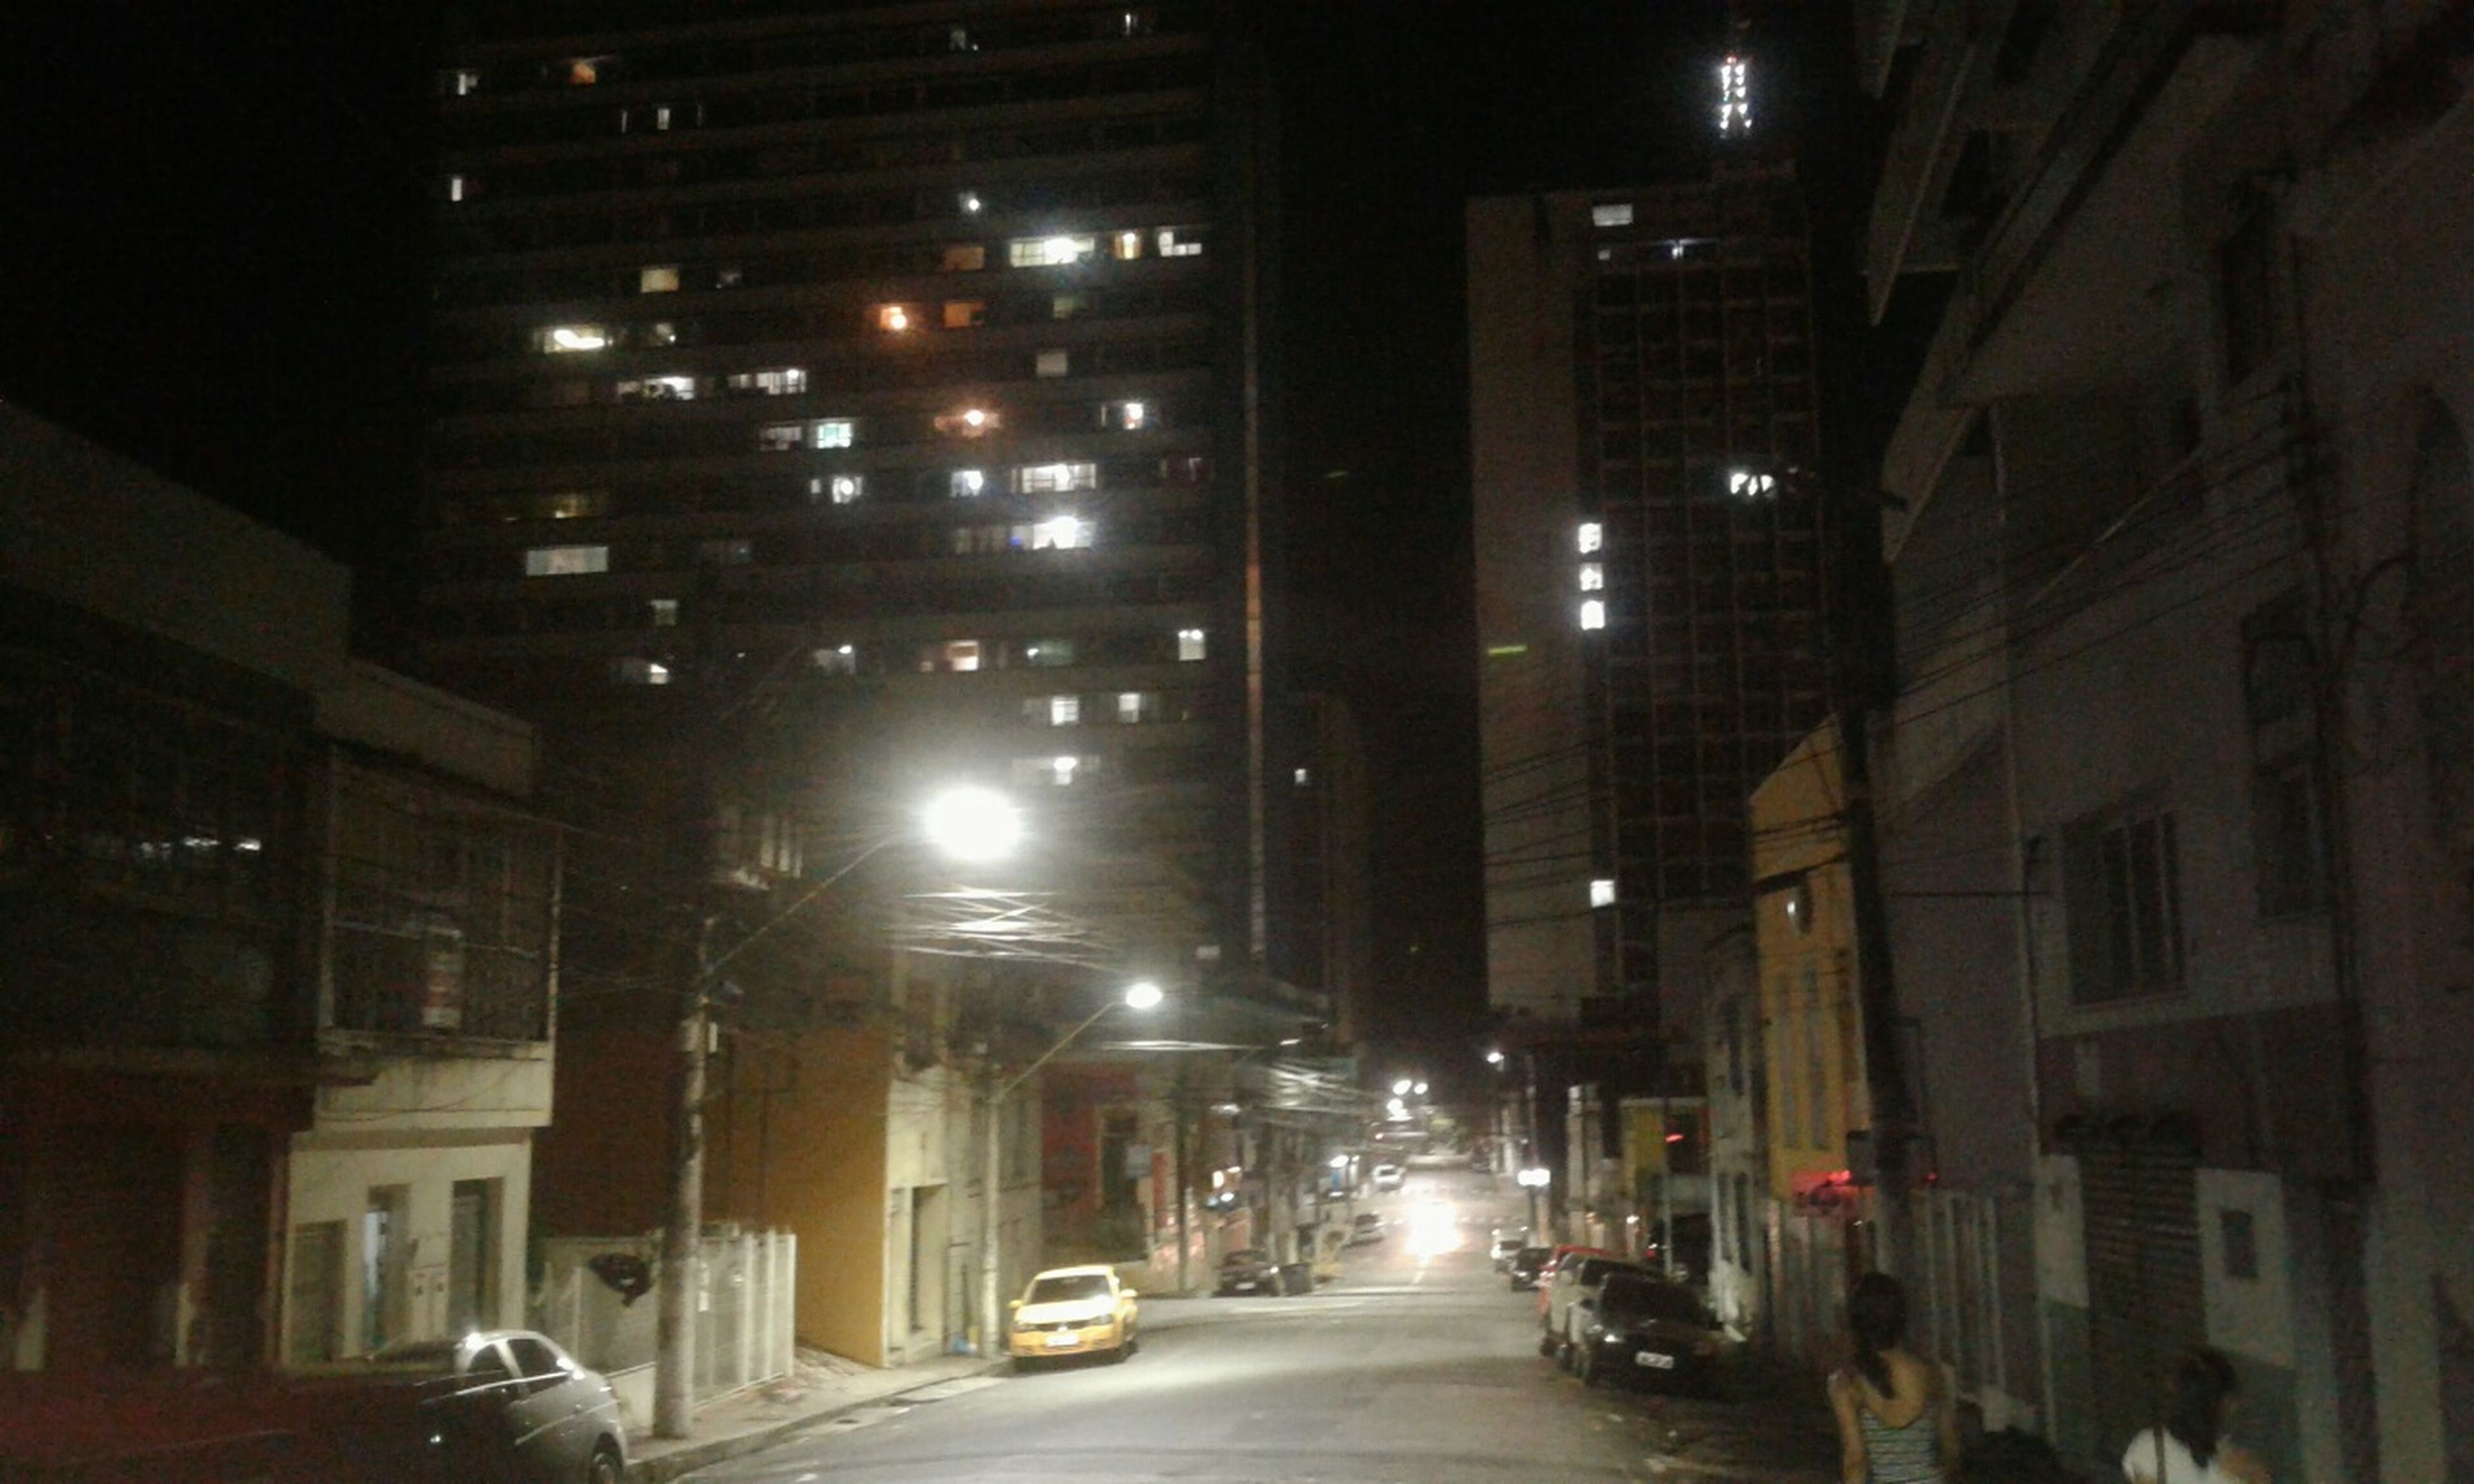 night, illuminated, street, architecture, building exterior, built structure, street light, road, transportation, outdoors, city, no people